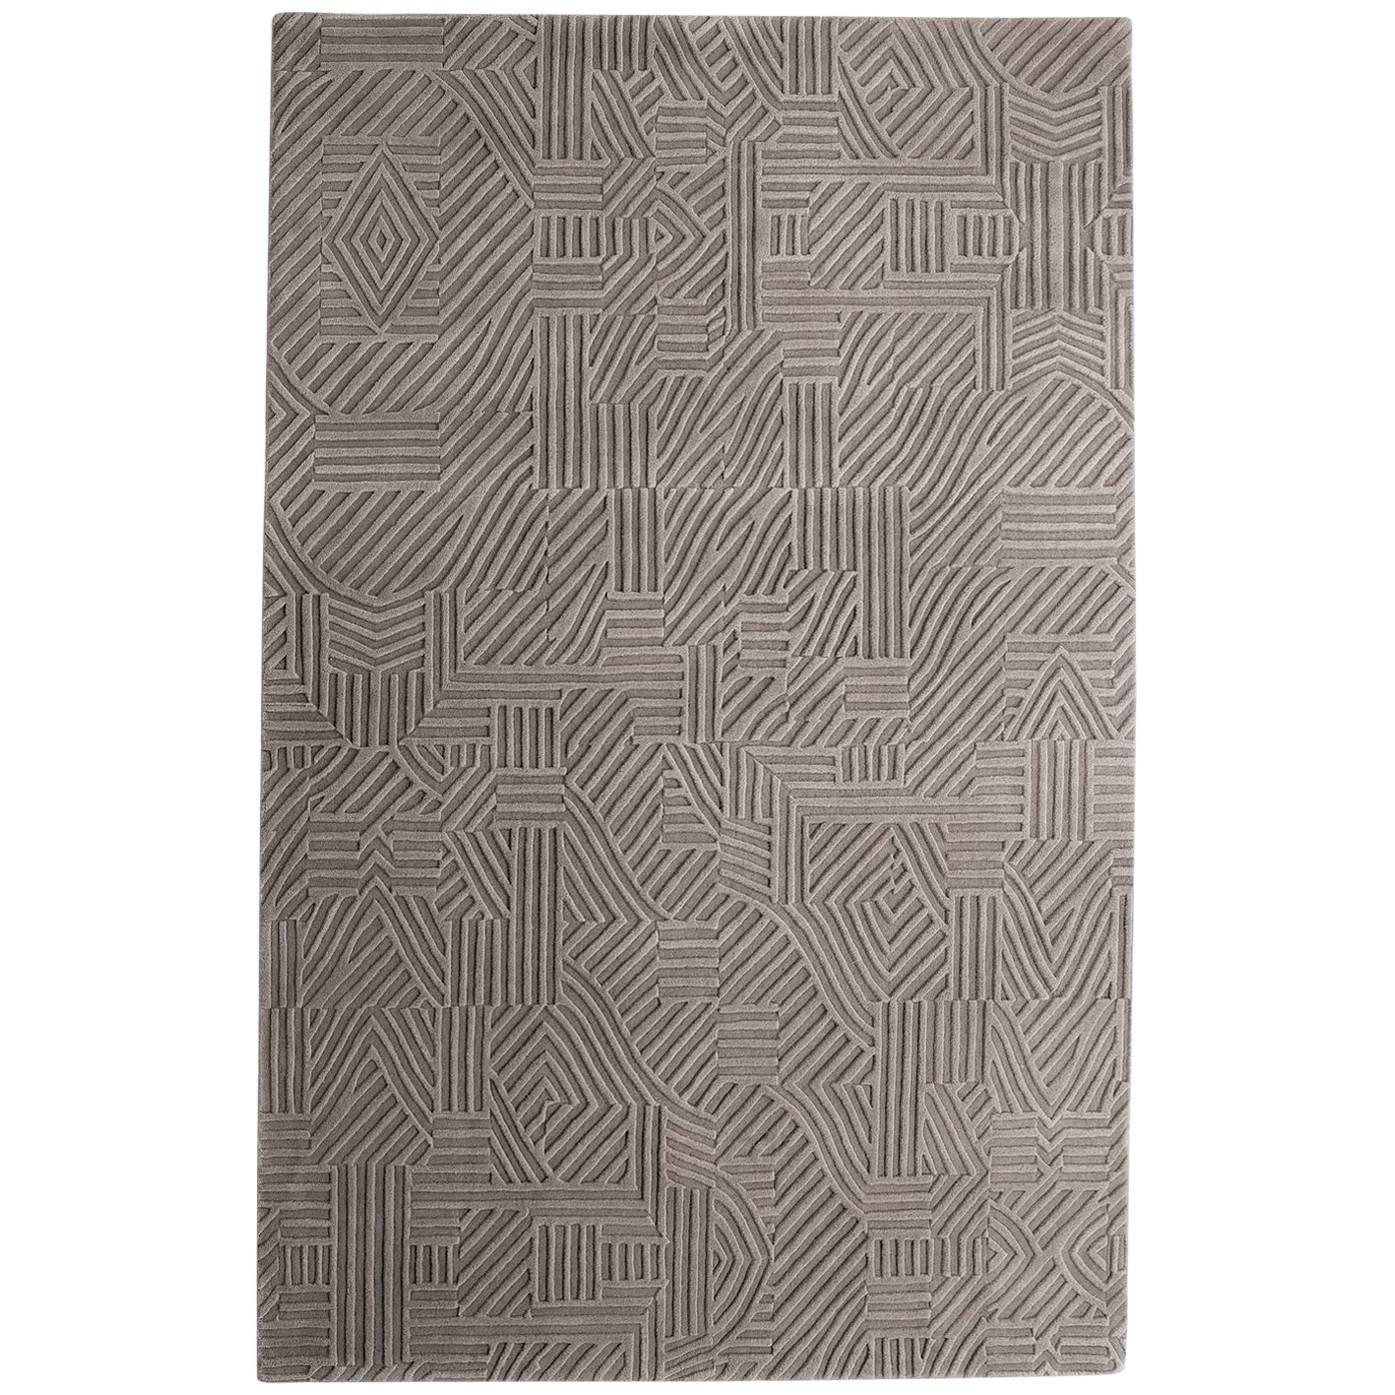 African Pattern One Area Rug in Hand-Tufted Wool by Milton Glaser Large